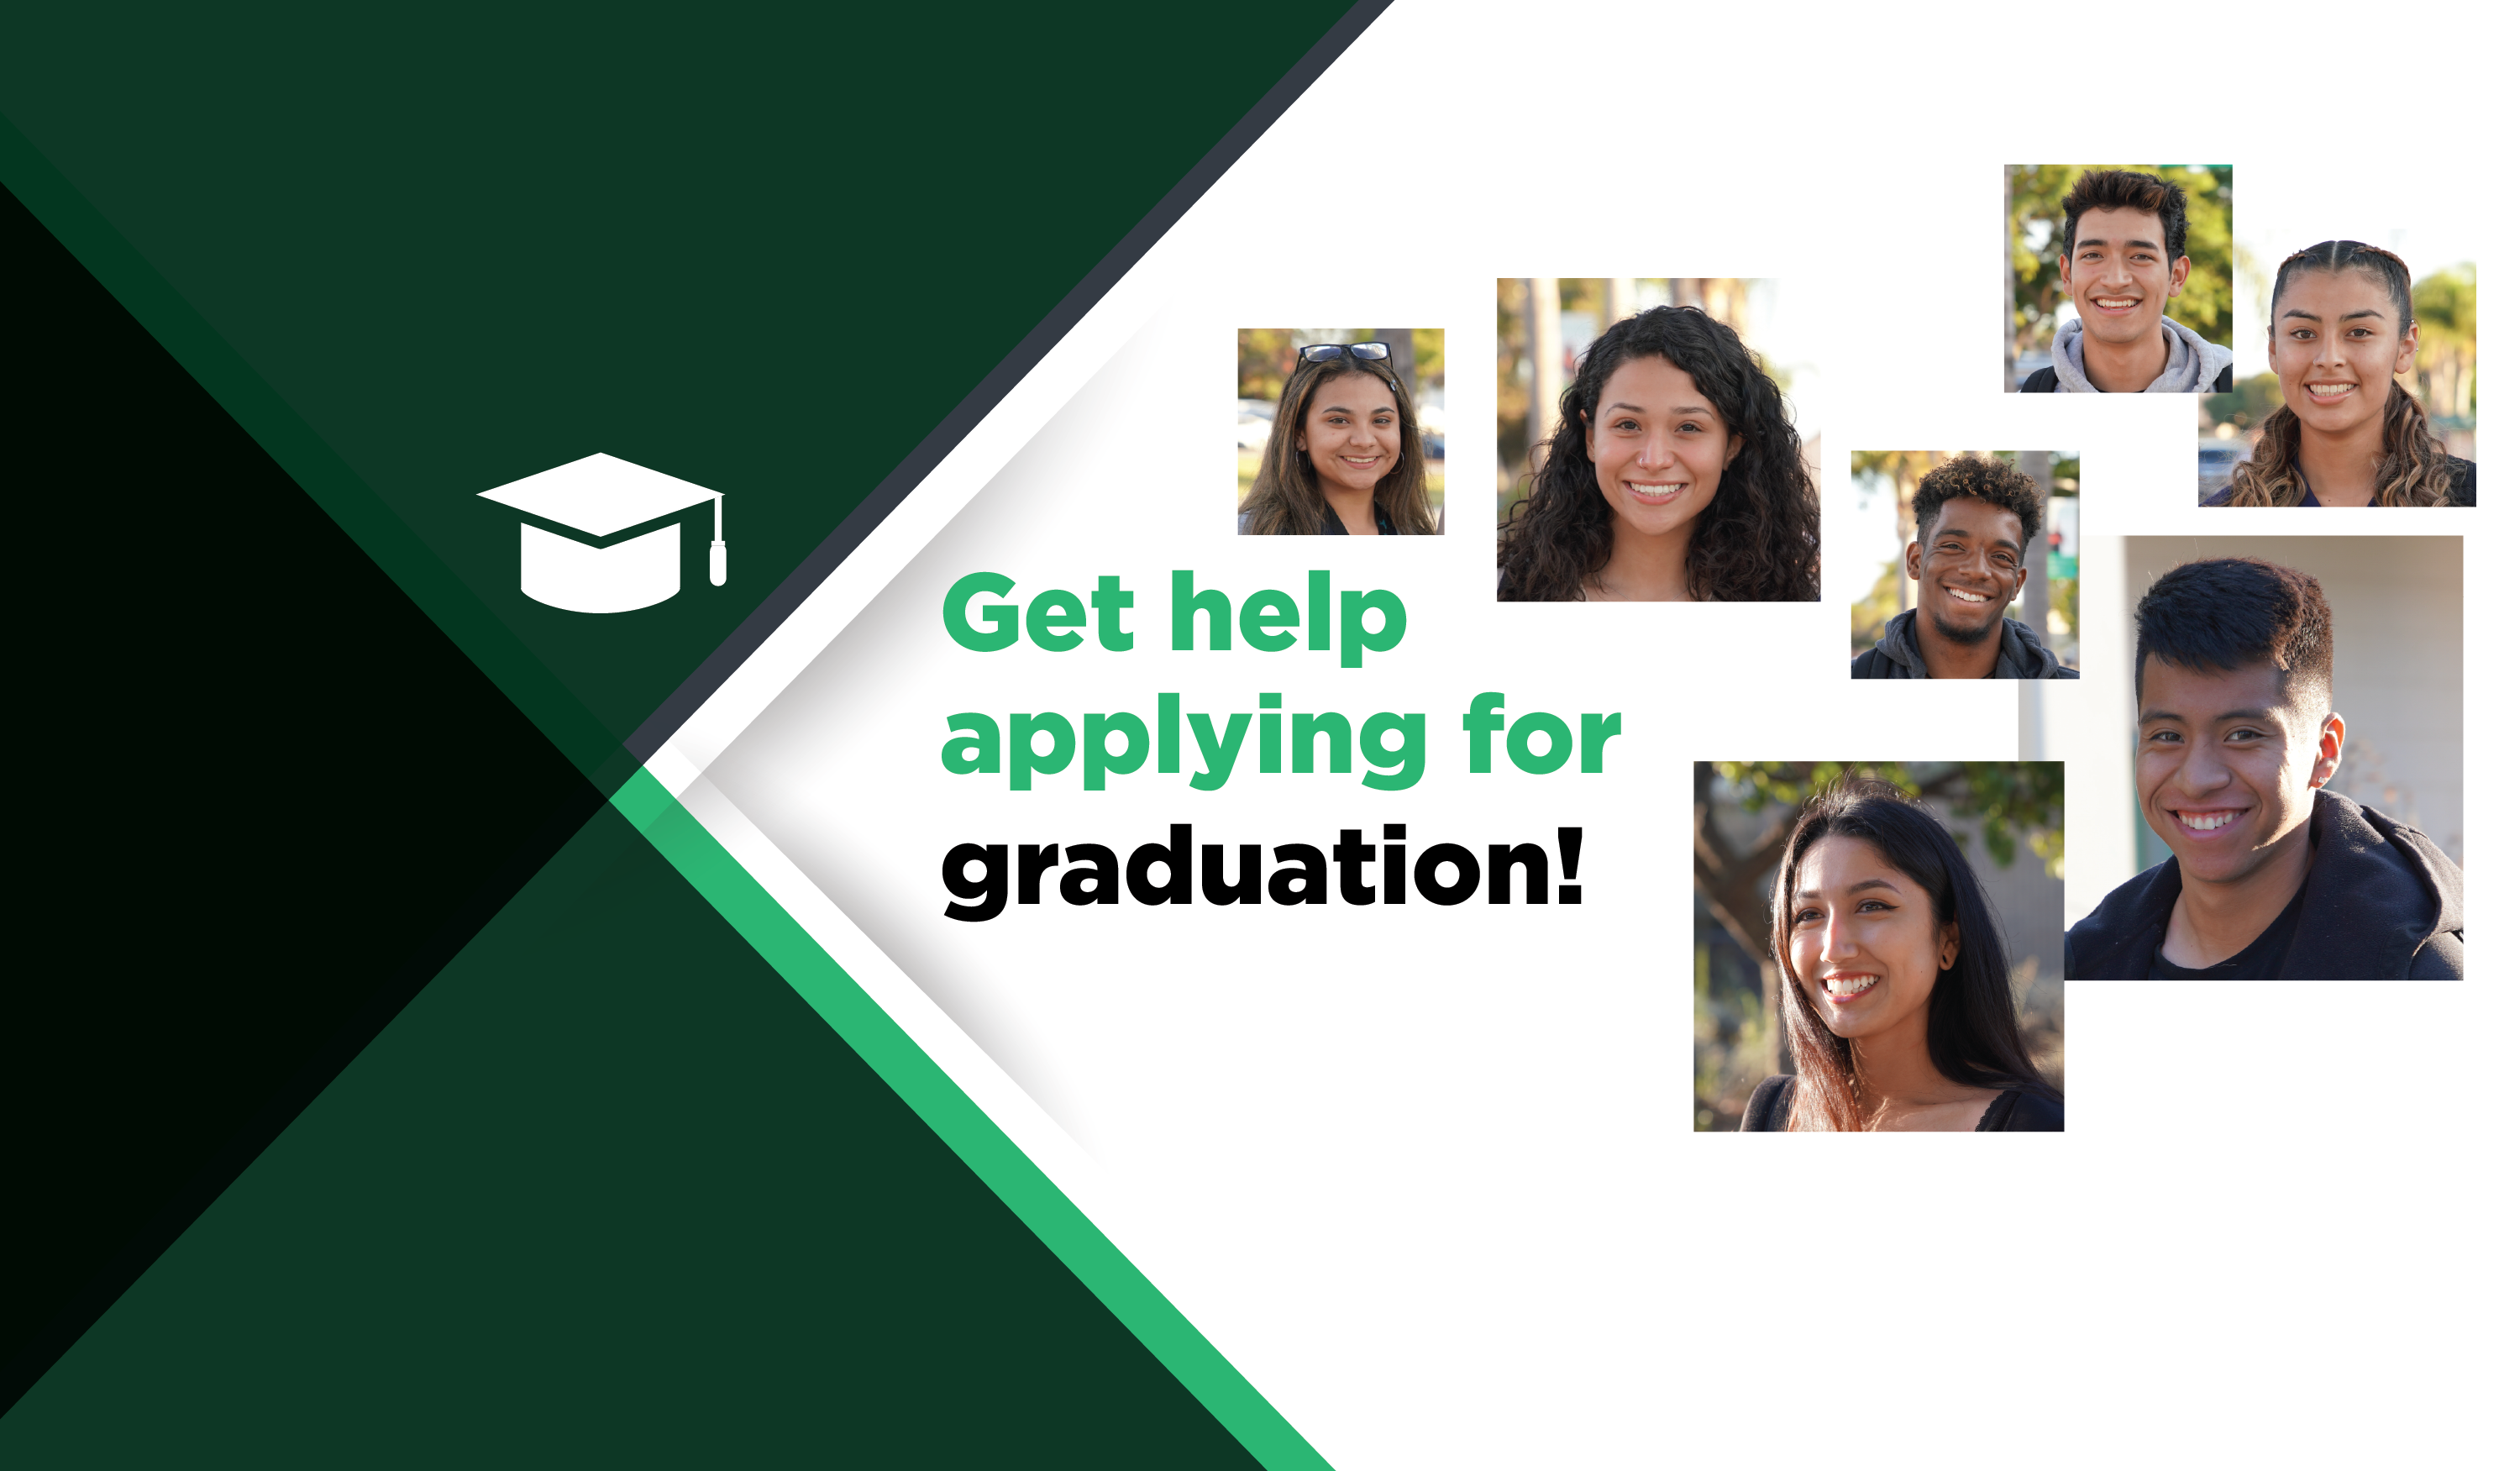 get help applying for graduation